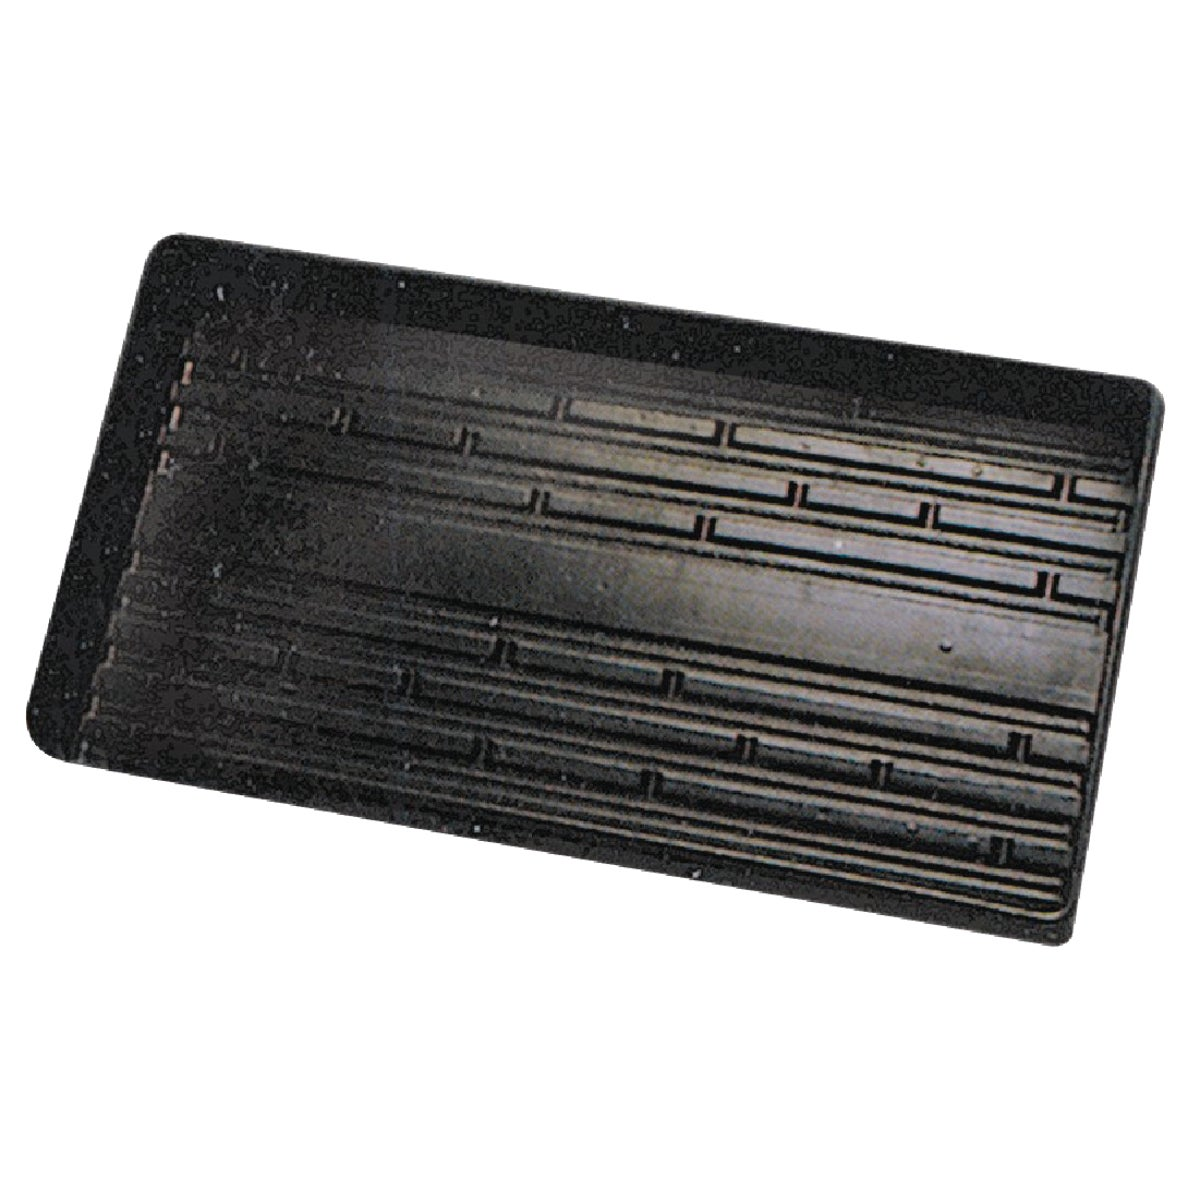 11X22 PLANT TRAY - TTRAY by Plantation Products